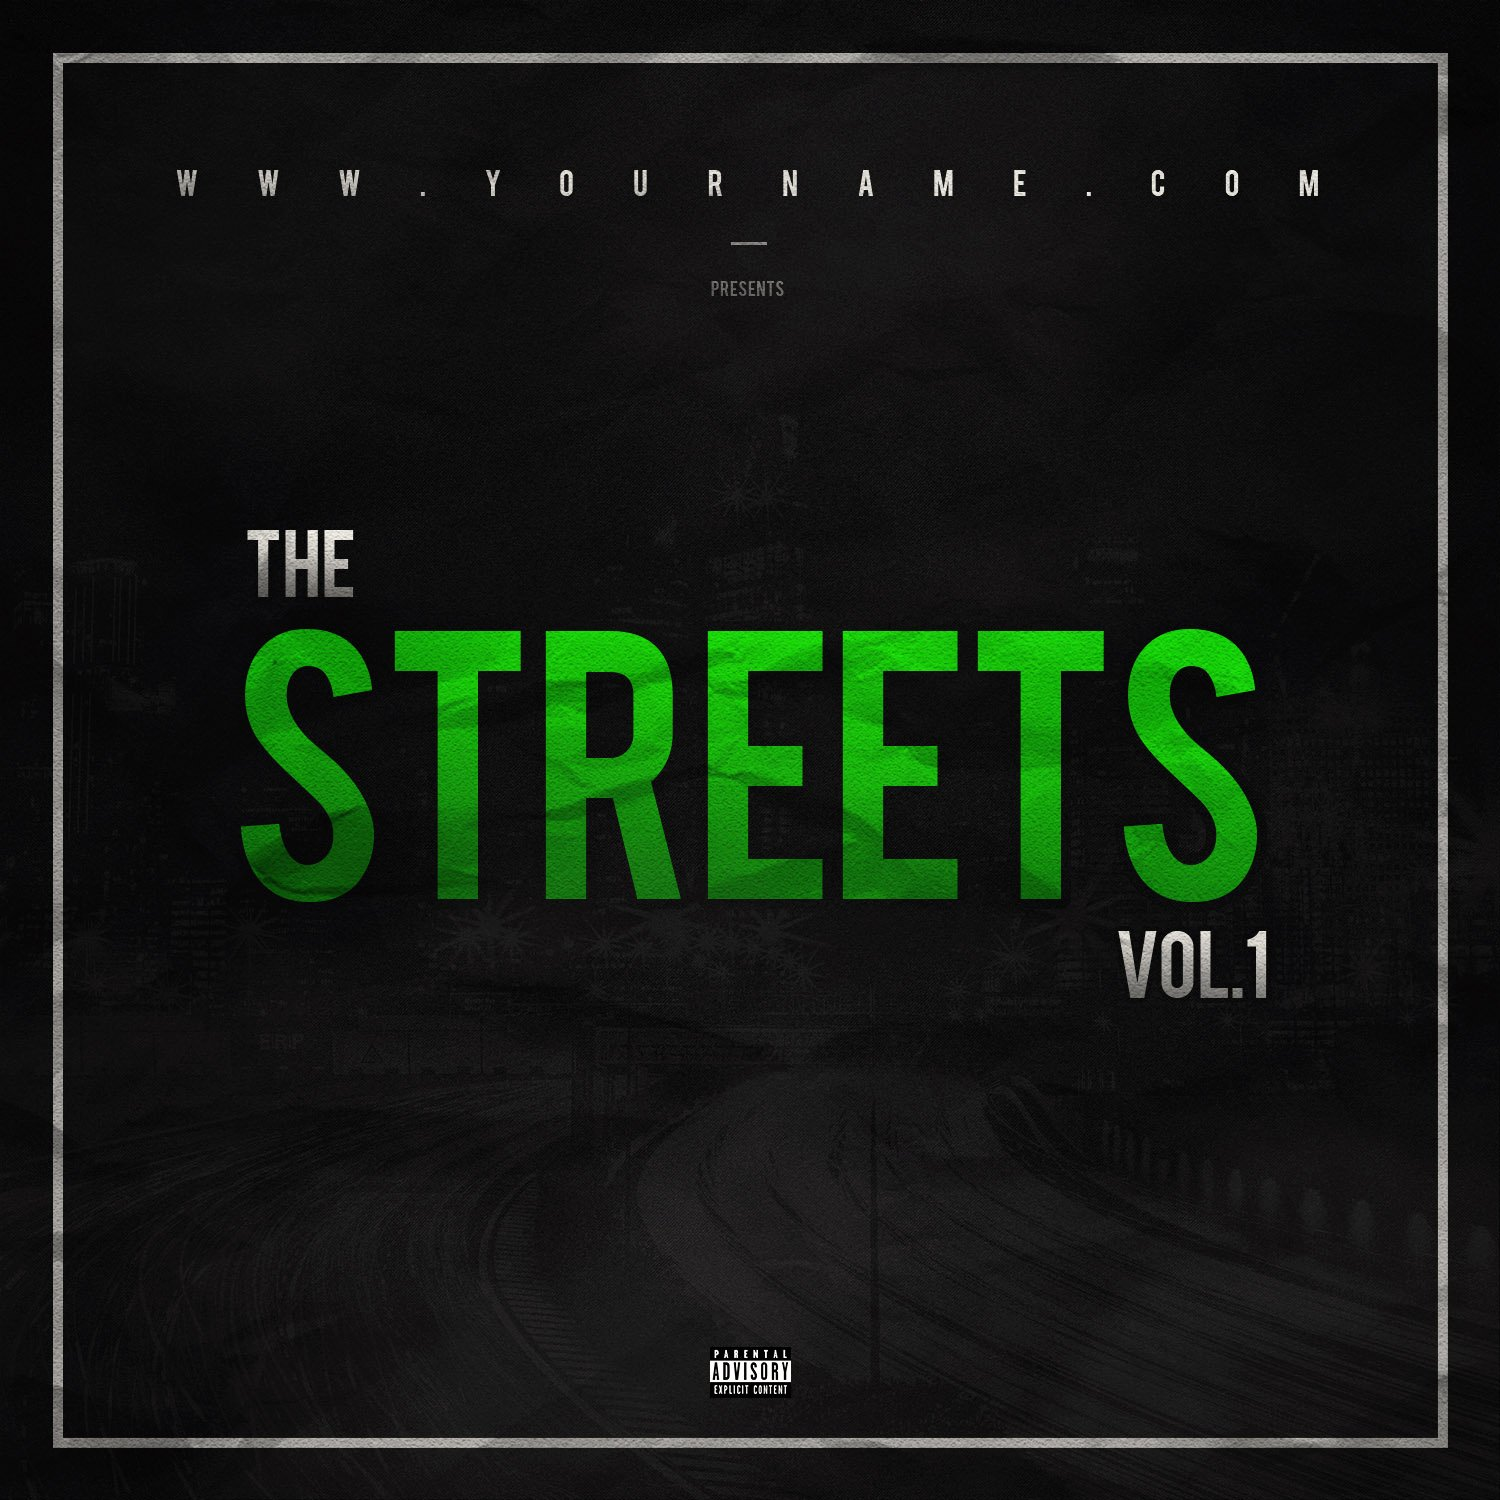 Street Mixtape Cover Template Vms